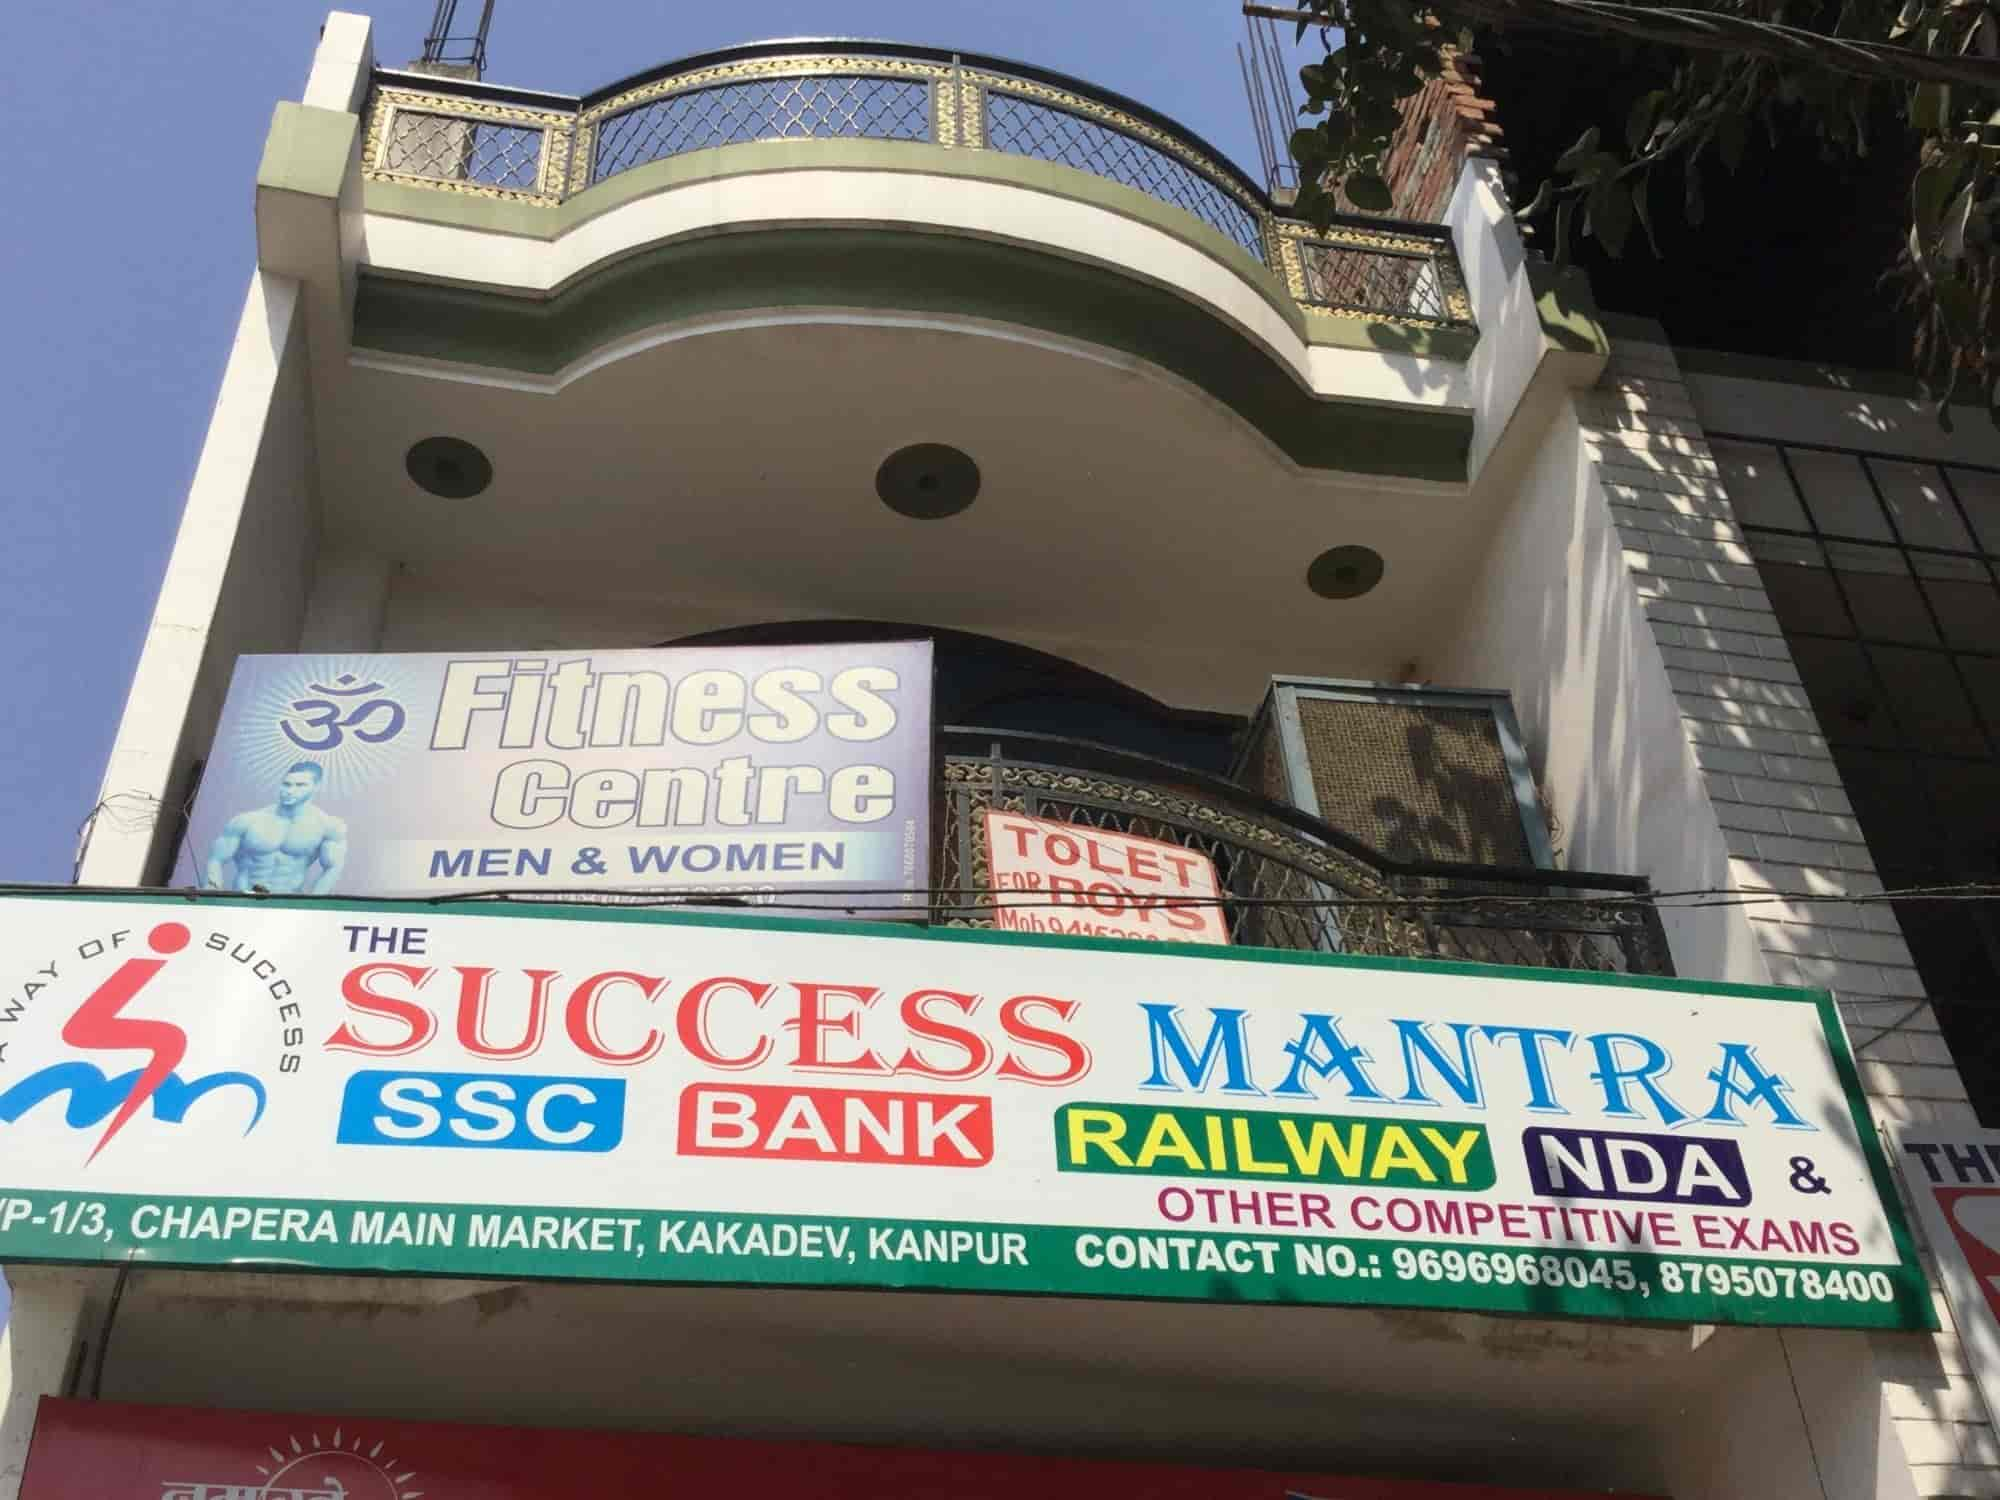 The Success Mantra, Kaka Deo - Tutorials in Kanpur - Justdial